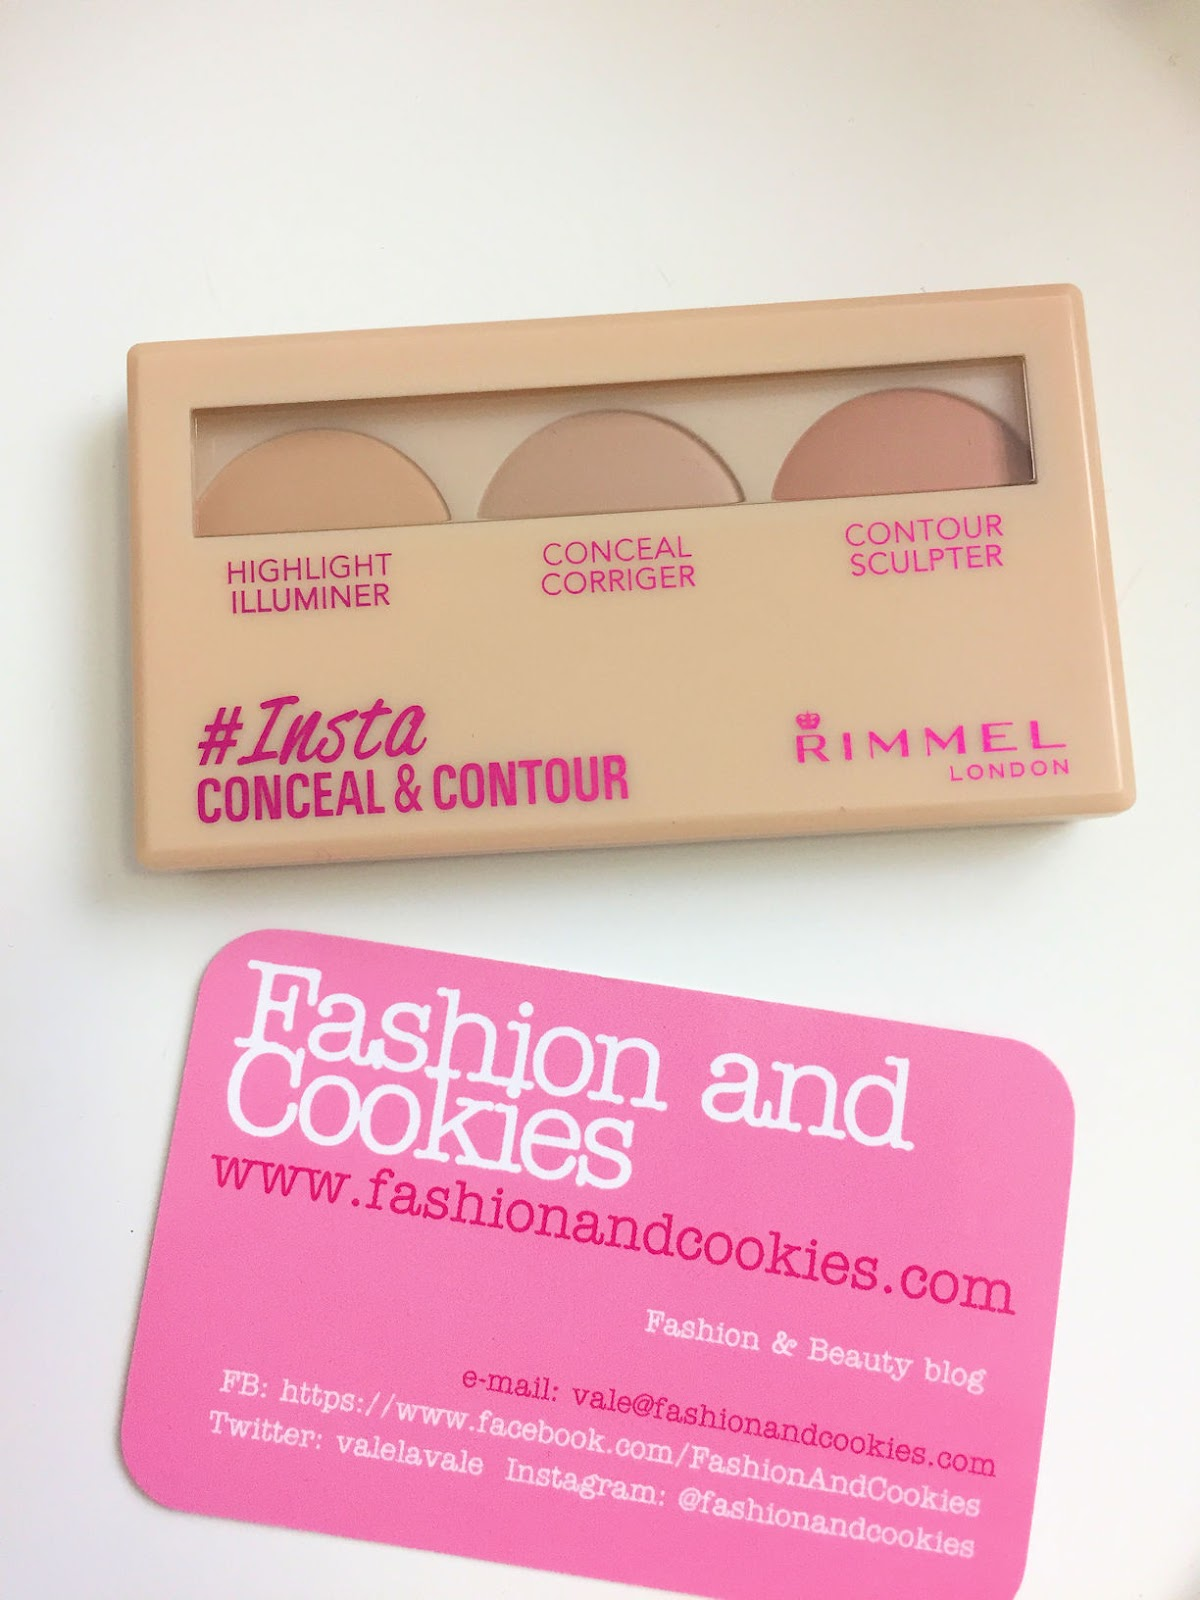 Rimmel Insta makeup per un viso a prova di selfie, conceal&contour palette review su Fashion and Cookies beauty blog, beauty blogger